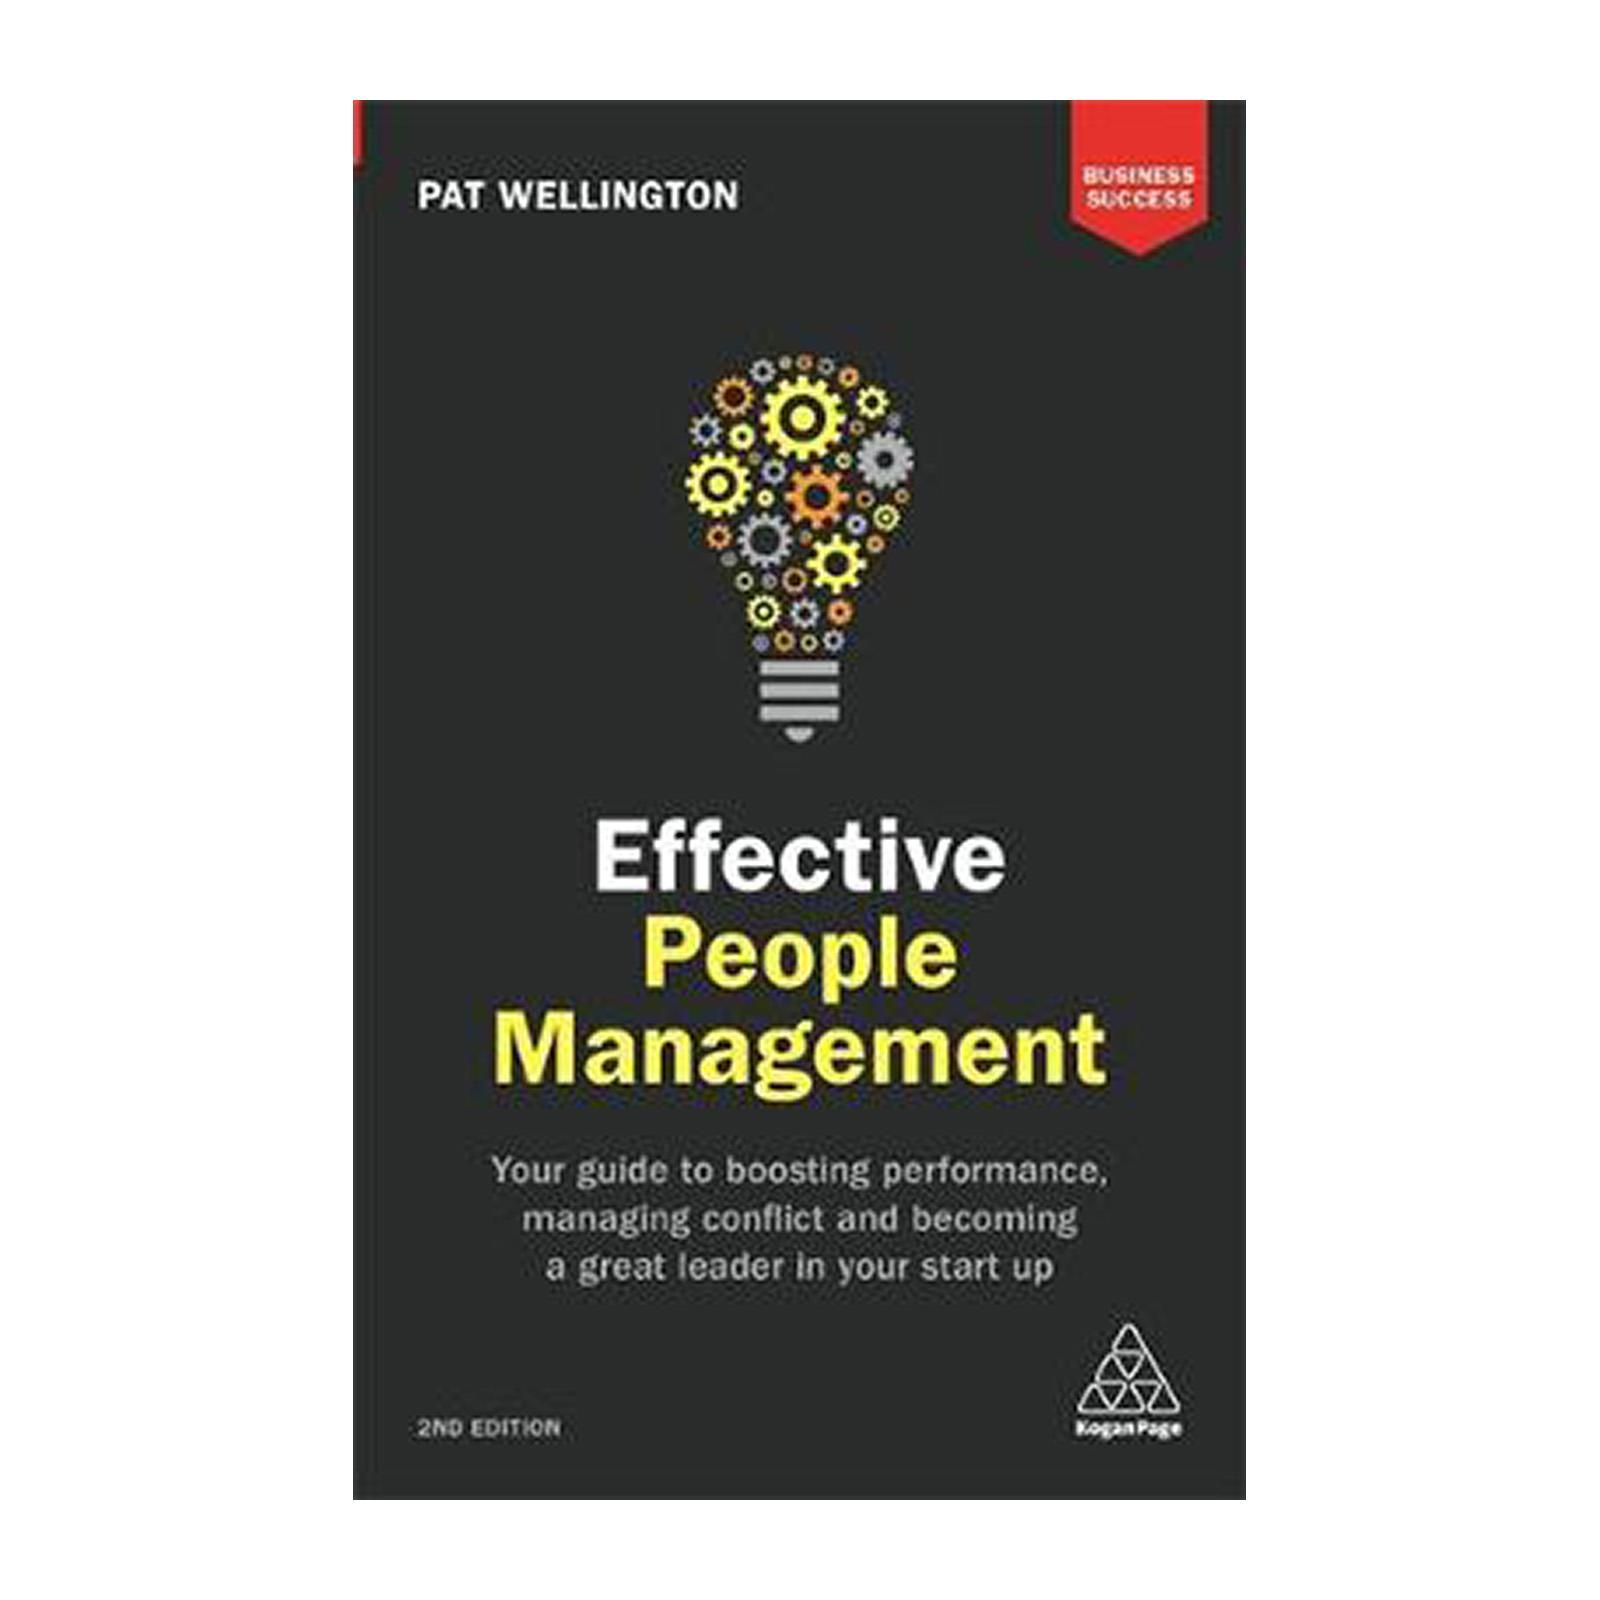 Effective People Management: Your Guide To Boosting Performance Managing Conflict And Becoming A Great Leader In Your Start Up (Paperback)